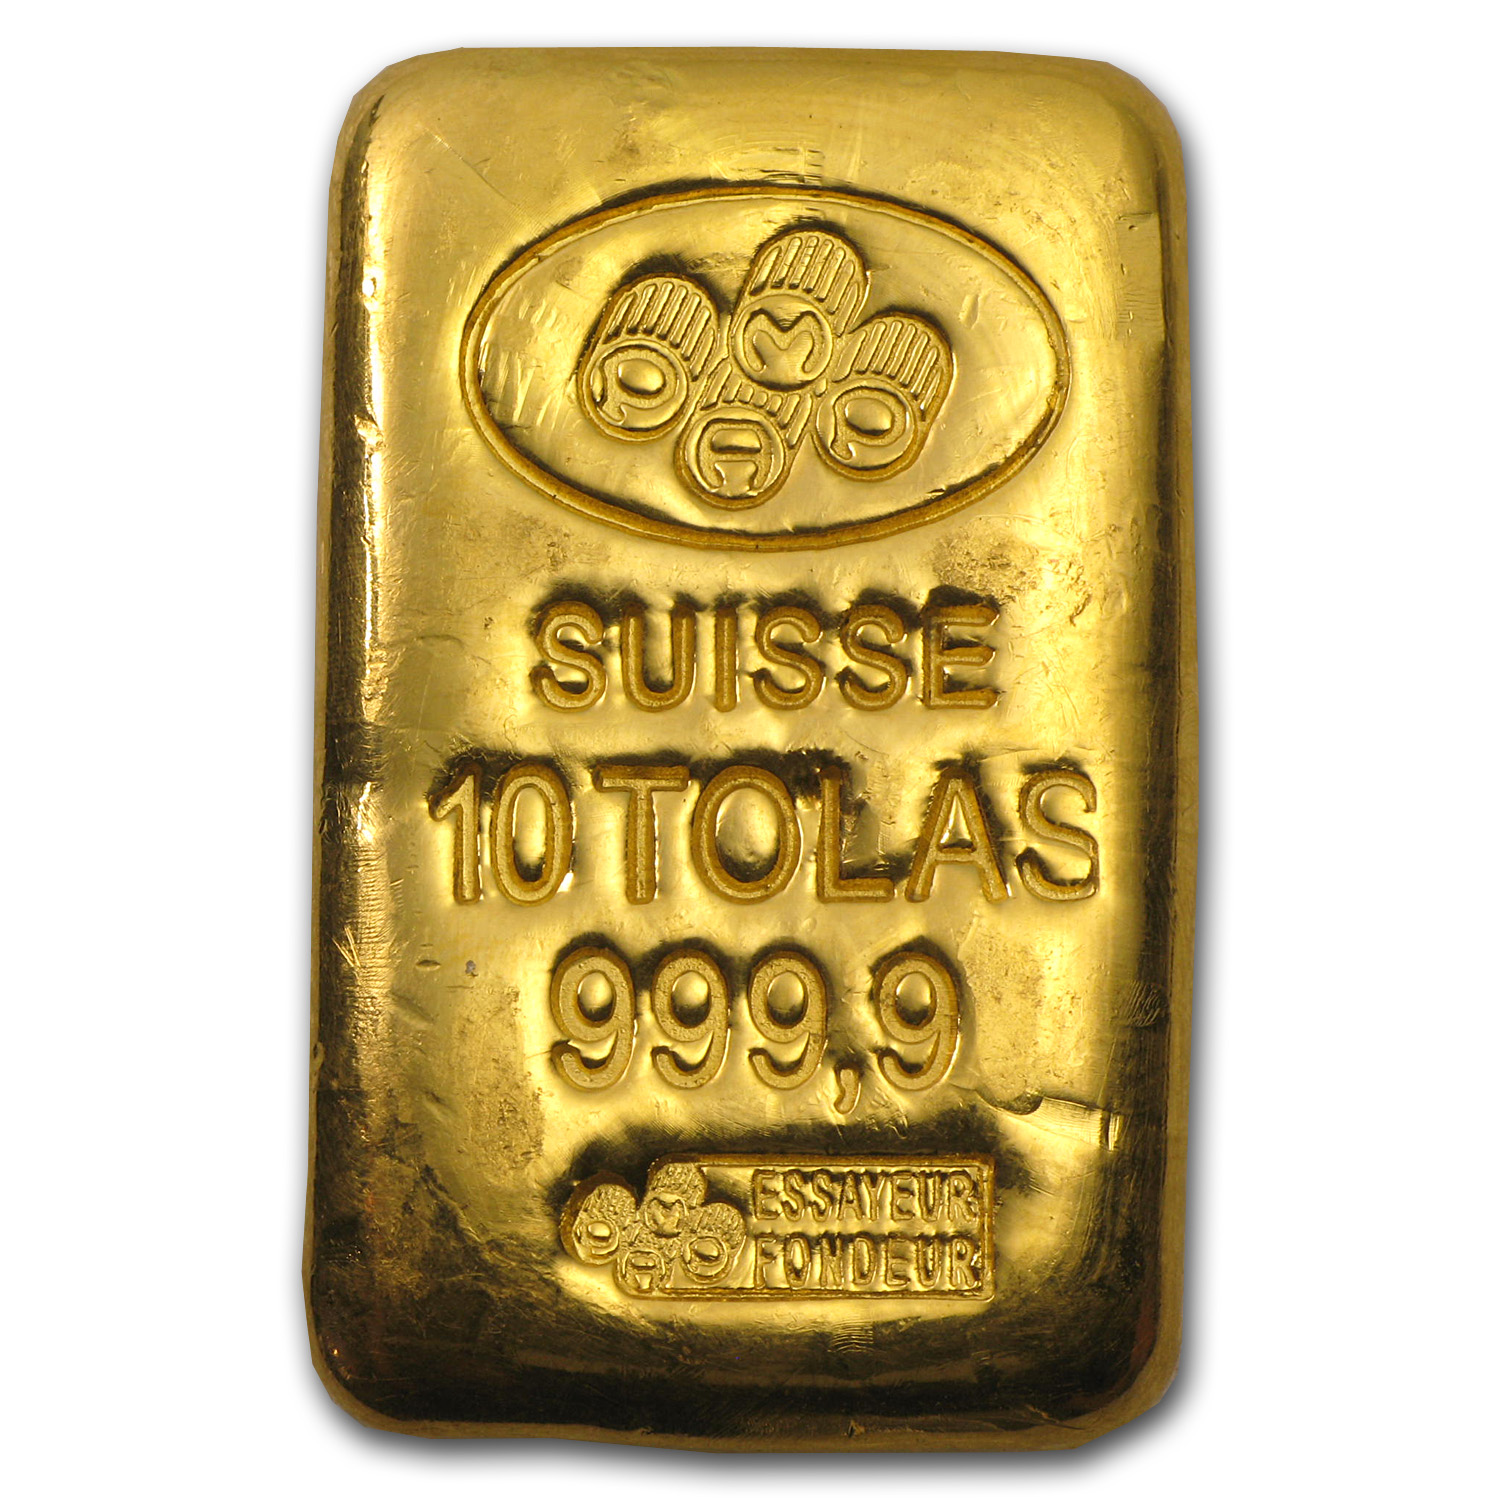 10 Tolas Gold Bar - Pamp Suisse (3.75 oz)